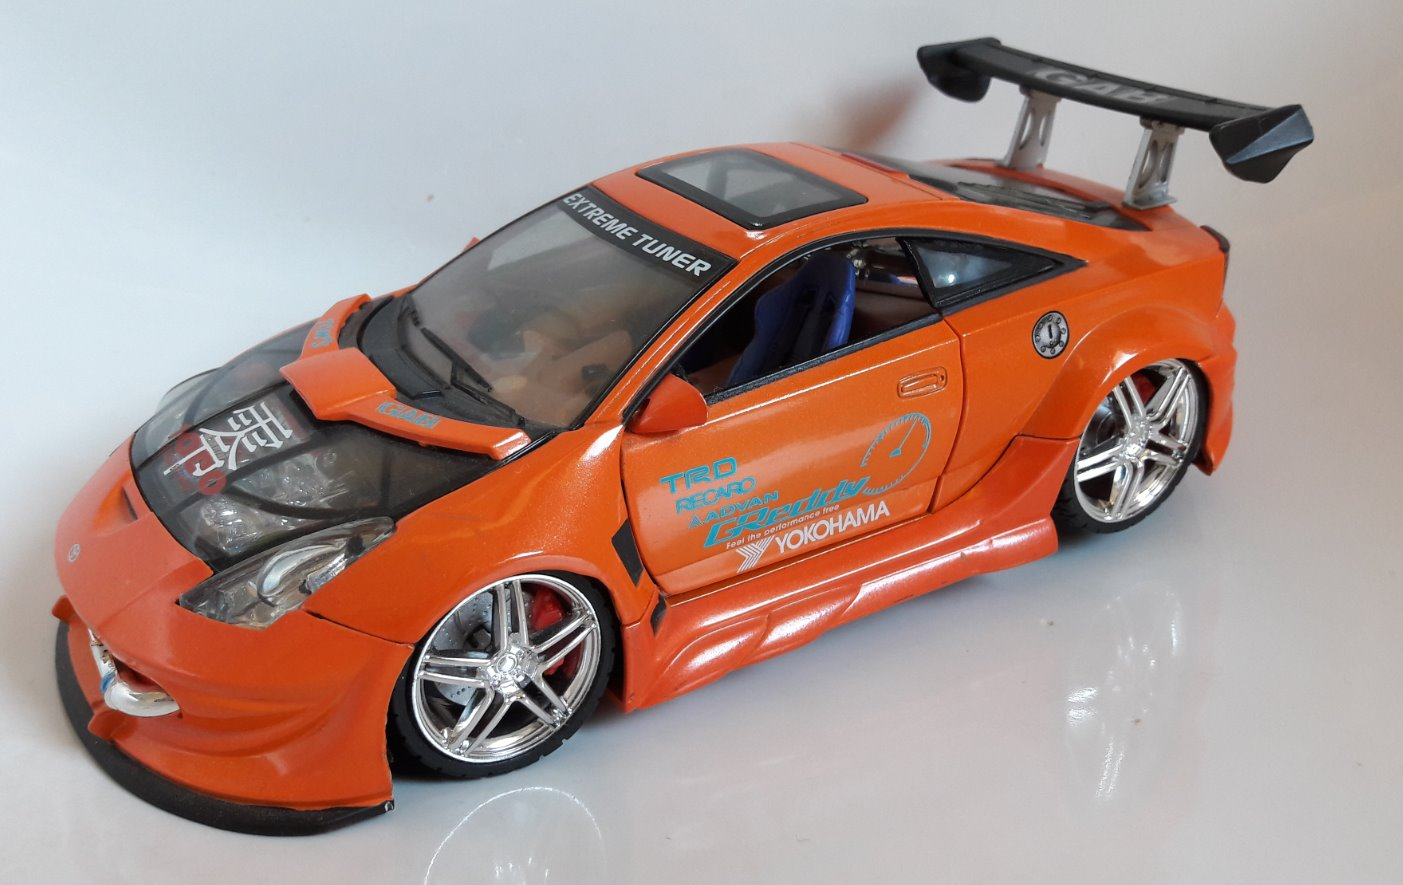 Toyota Celica Toy Car, Die Cast, And Hot Wheels front image (front cover)